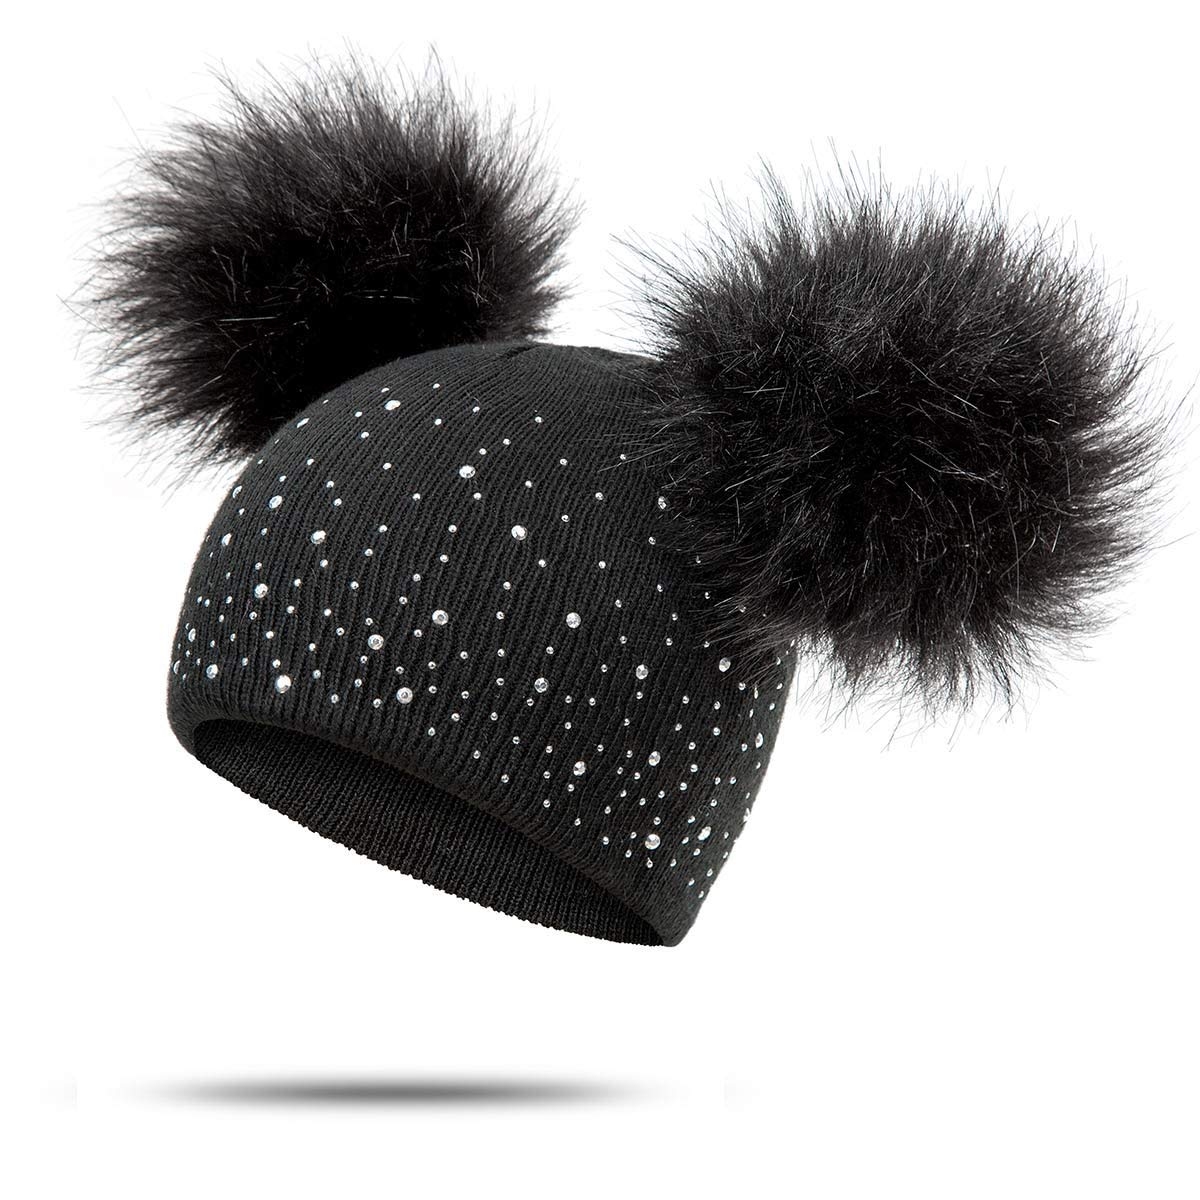 Toddlers Baby Boys Girls Beanie Hat with Shiny Diamonds Faux Fur Pom Pom Cap for Kids RAYSUN Kids Winter Knitted Hats